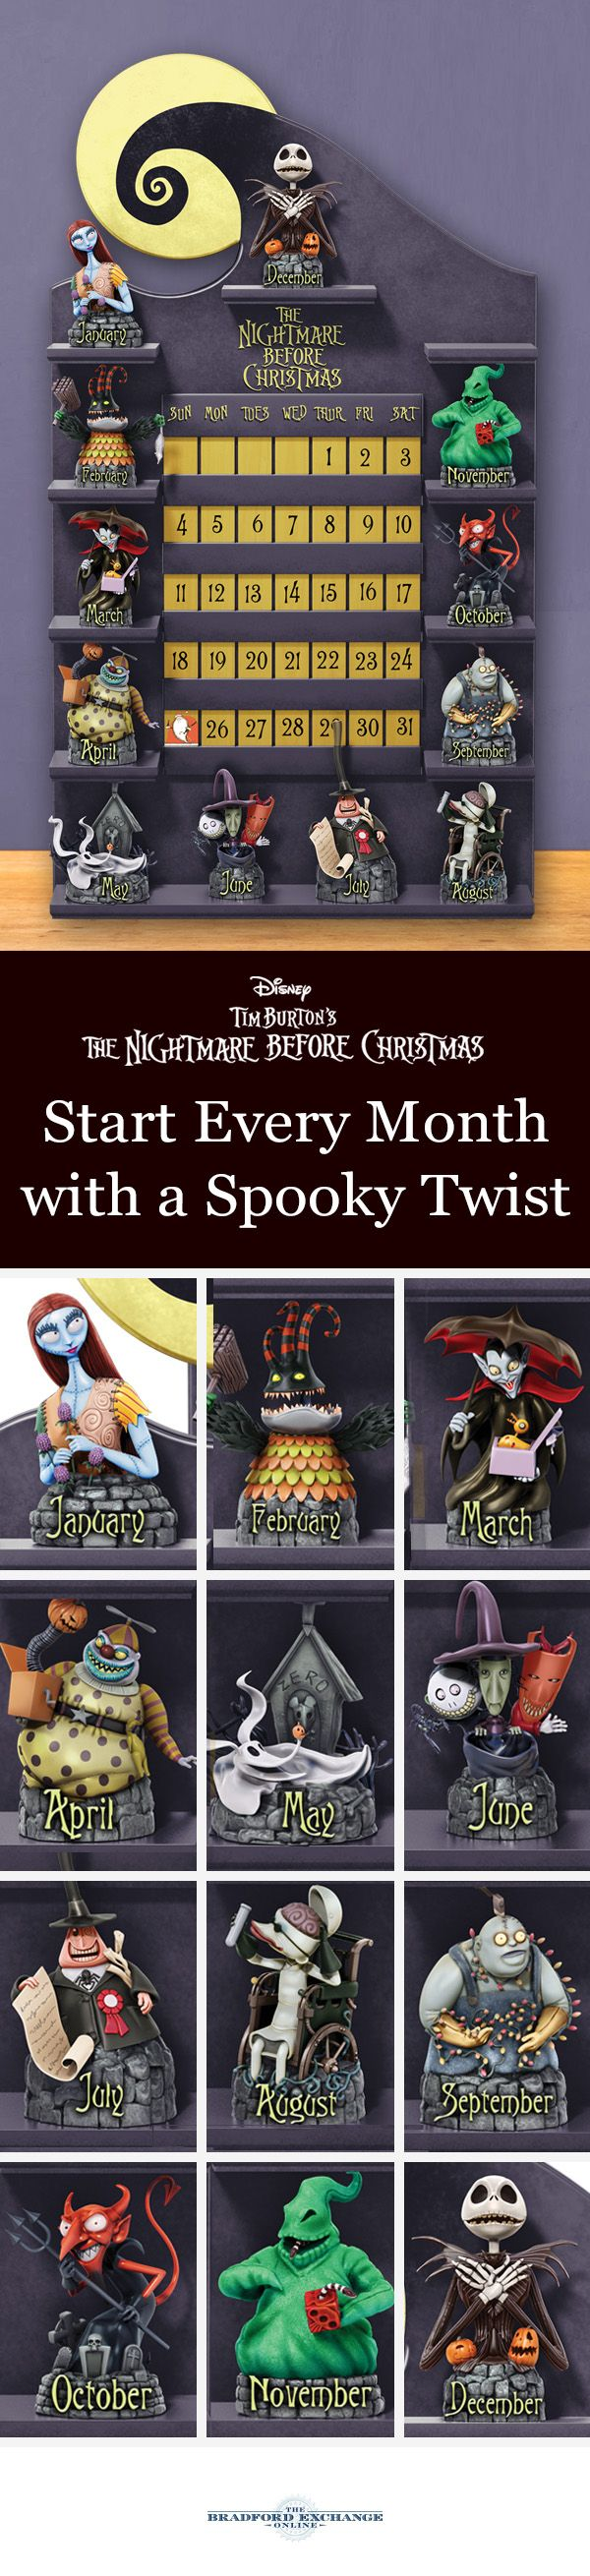 Best 25+ Nightmare before christmas ideas on Pinterest | Nightmare ...